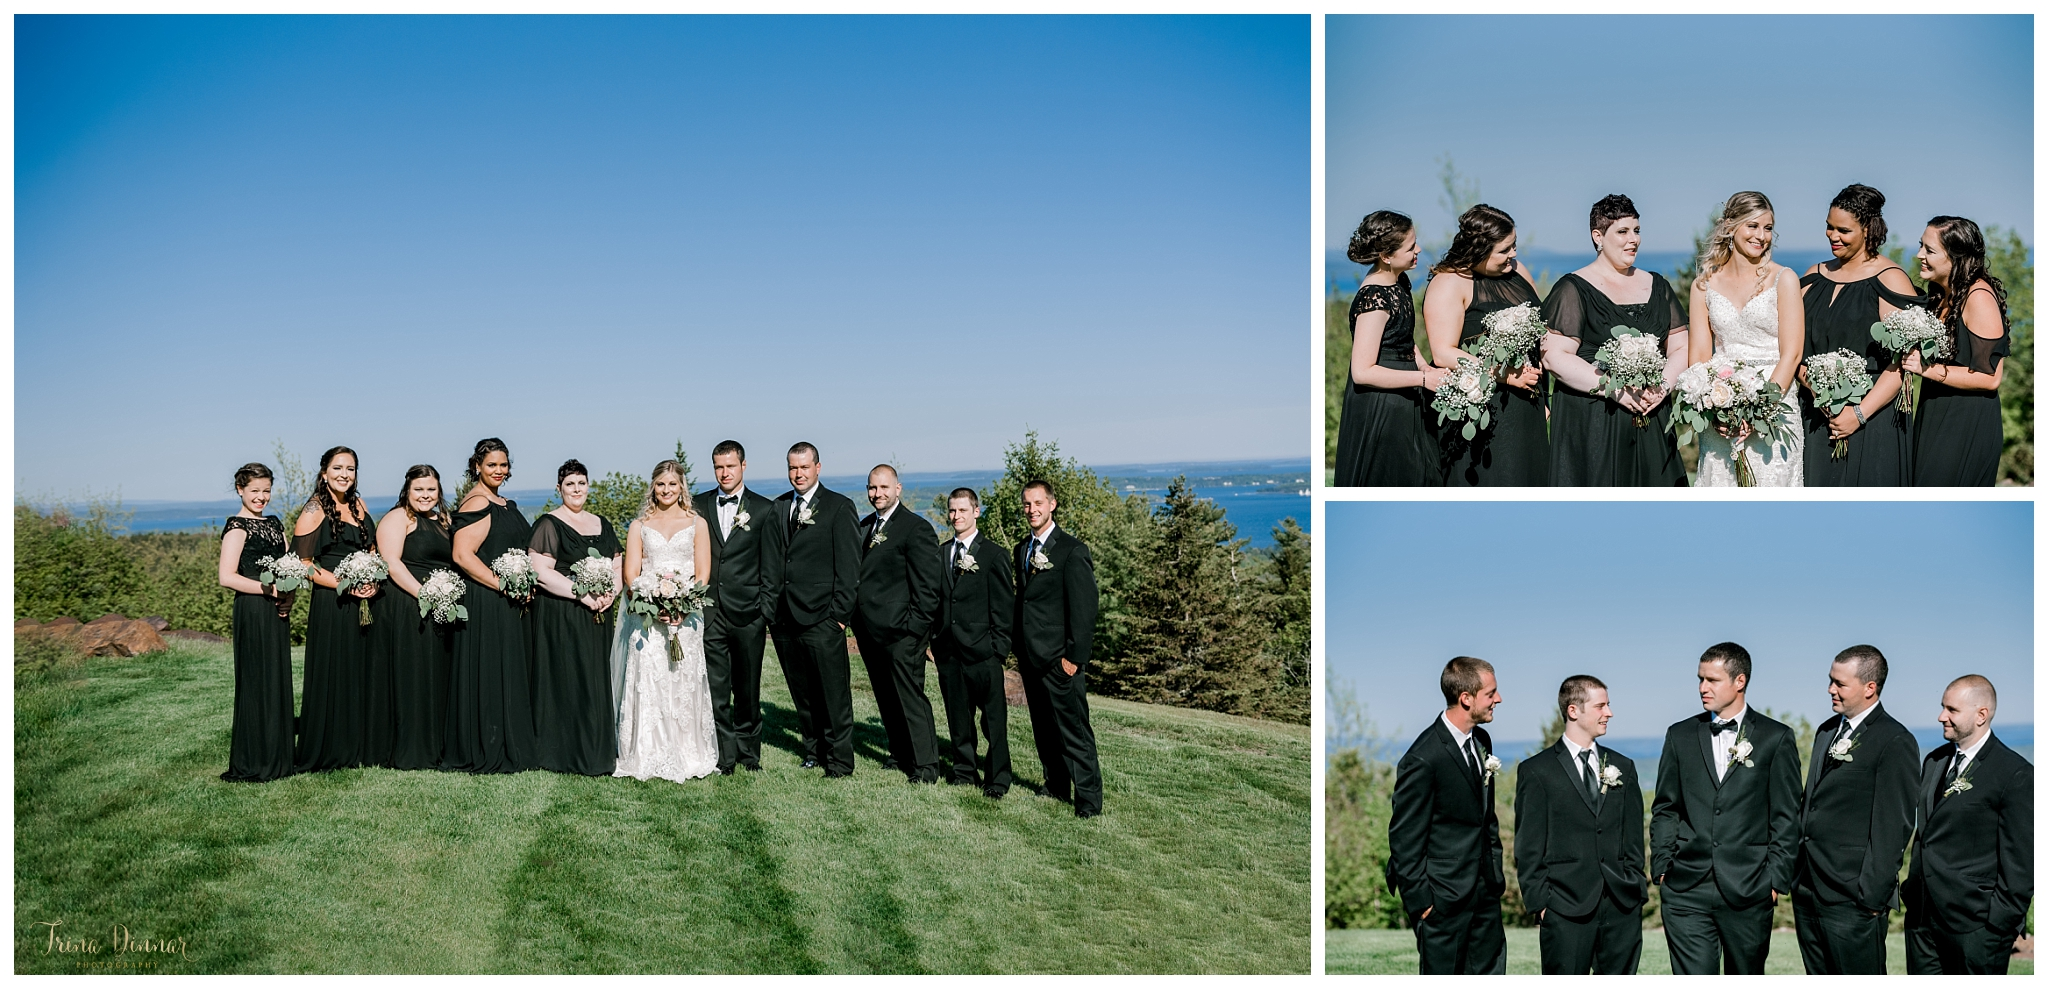 Wedding Party Formal Portraits